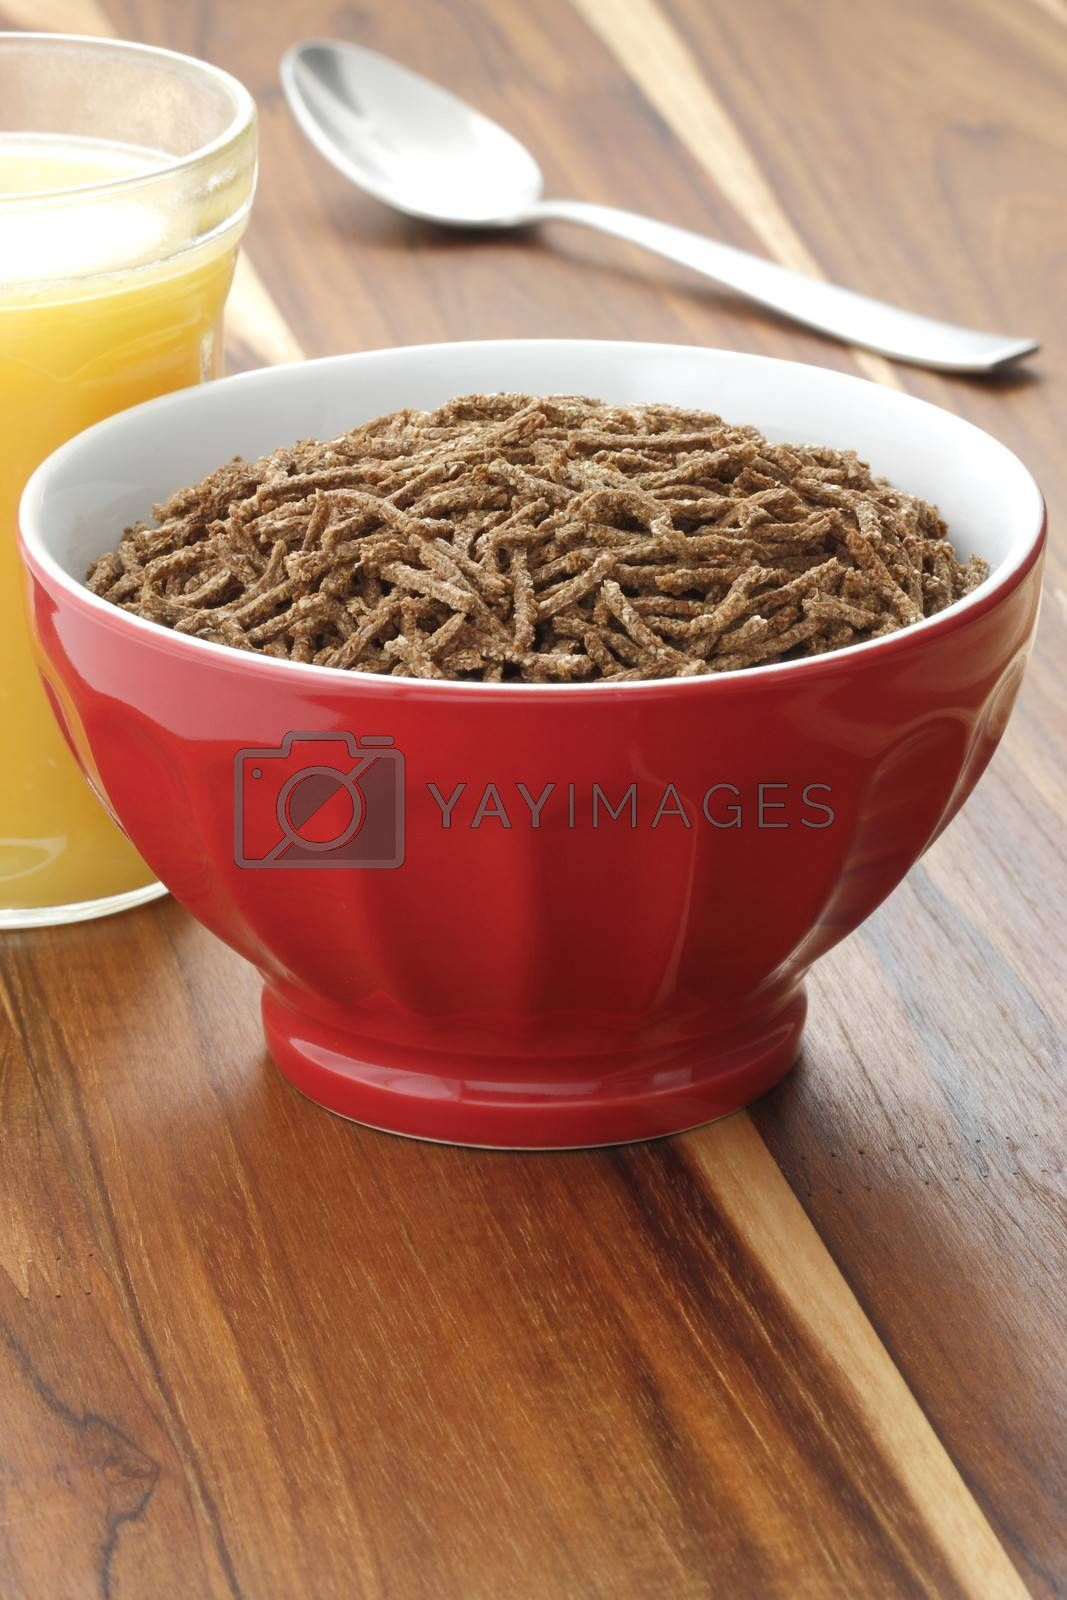 Delicious and nutritious cereal, high in bran, high in fiber, served in a beautiful  French Cafe au Lait Bowl with wide rims. In place of handles. This healthy bran cereal will be an aid to digestive health.